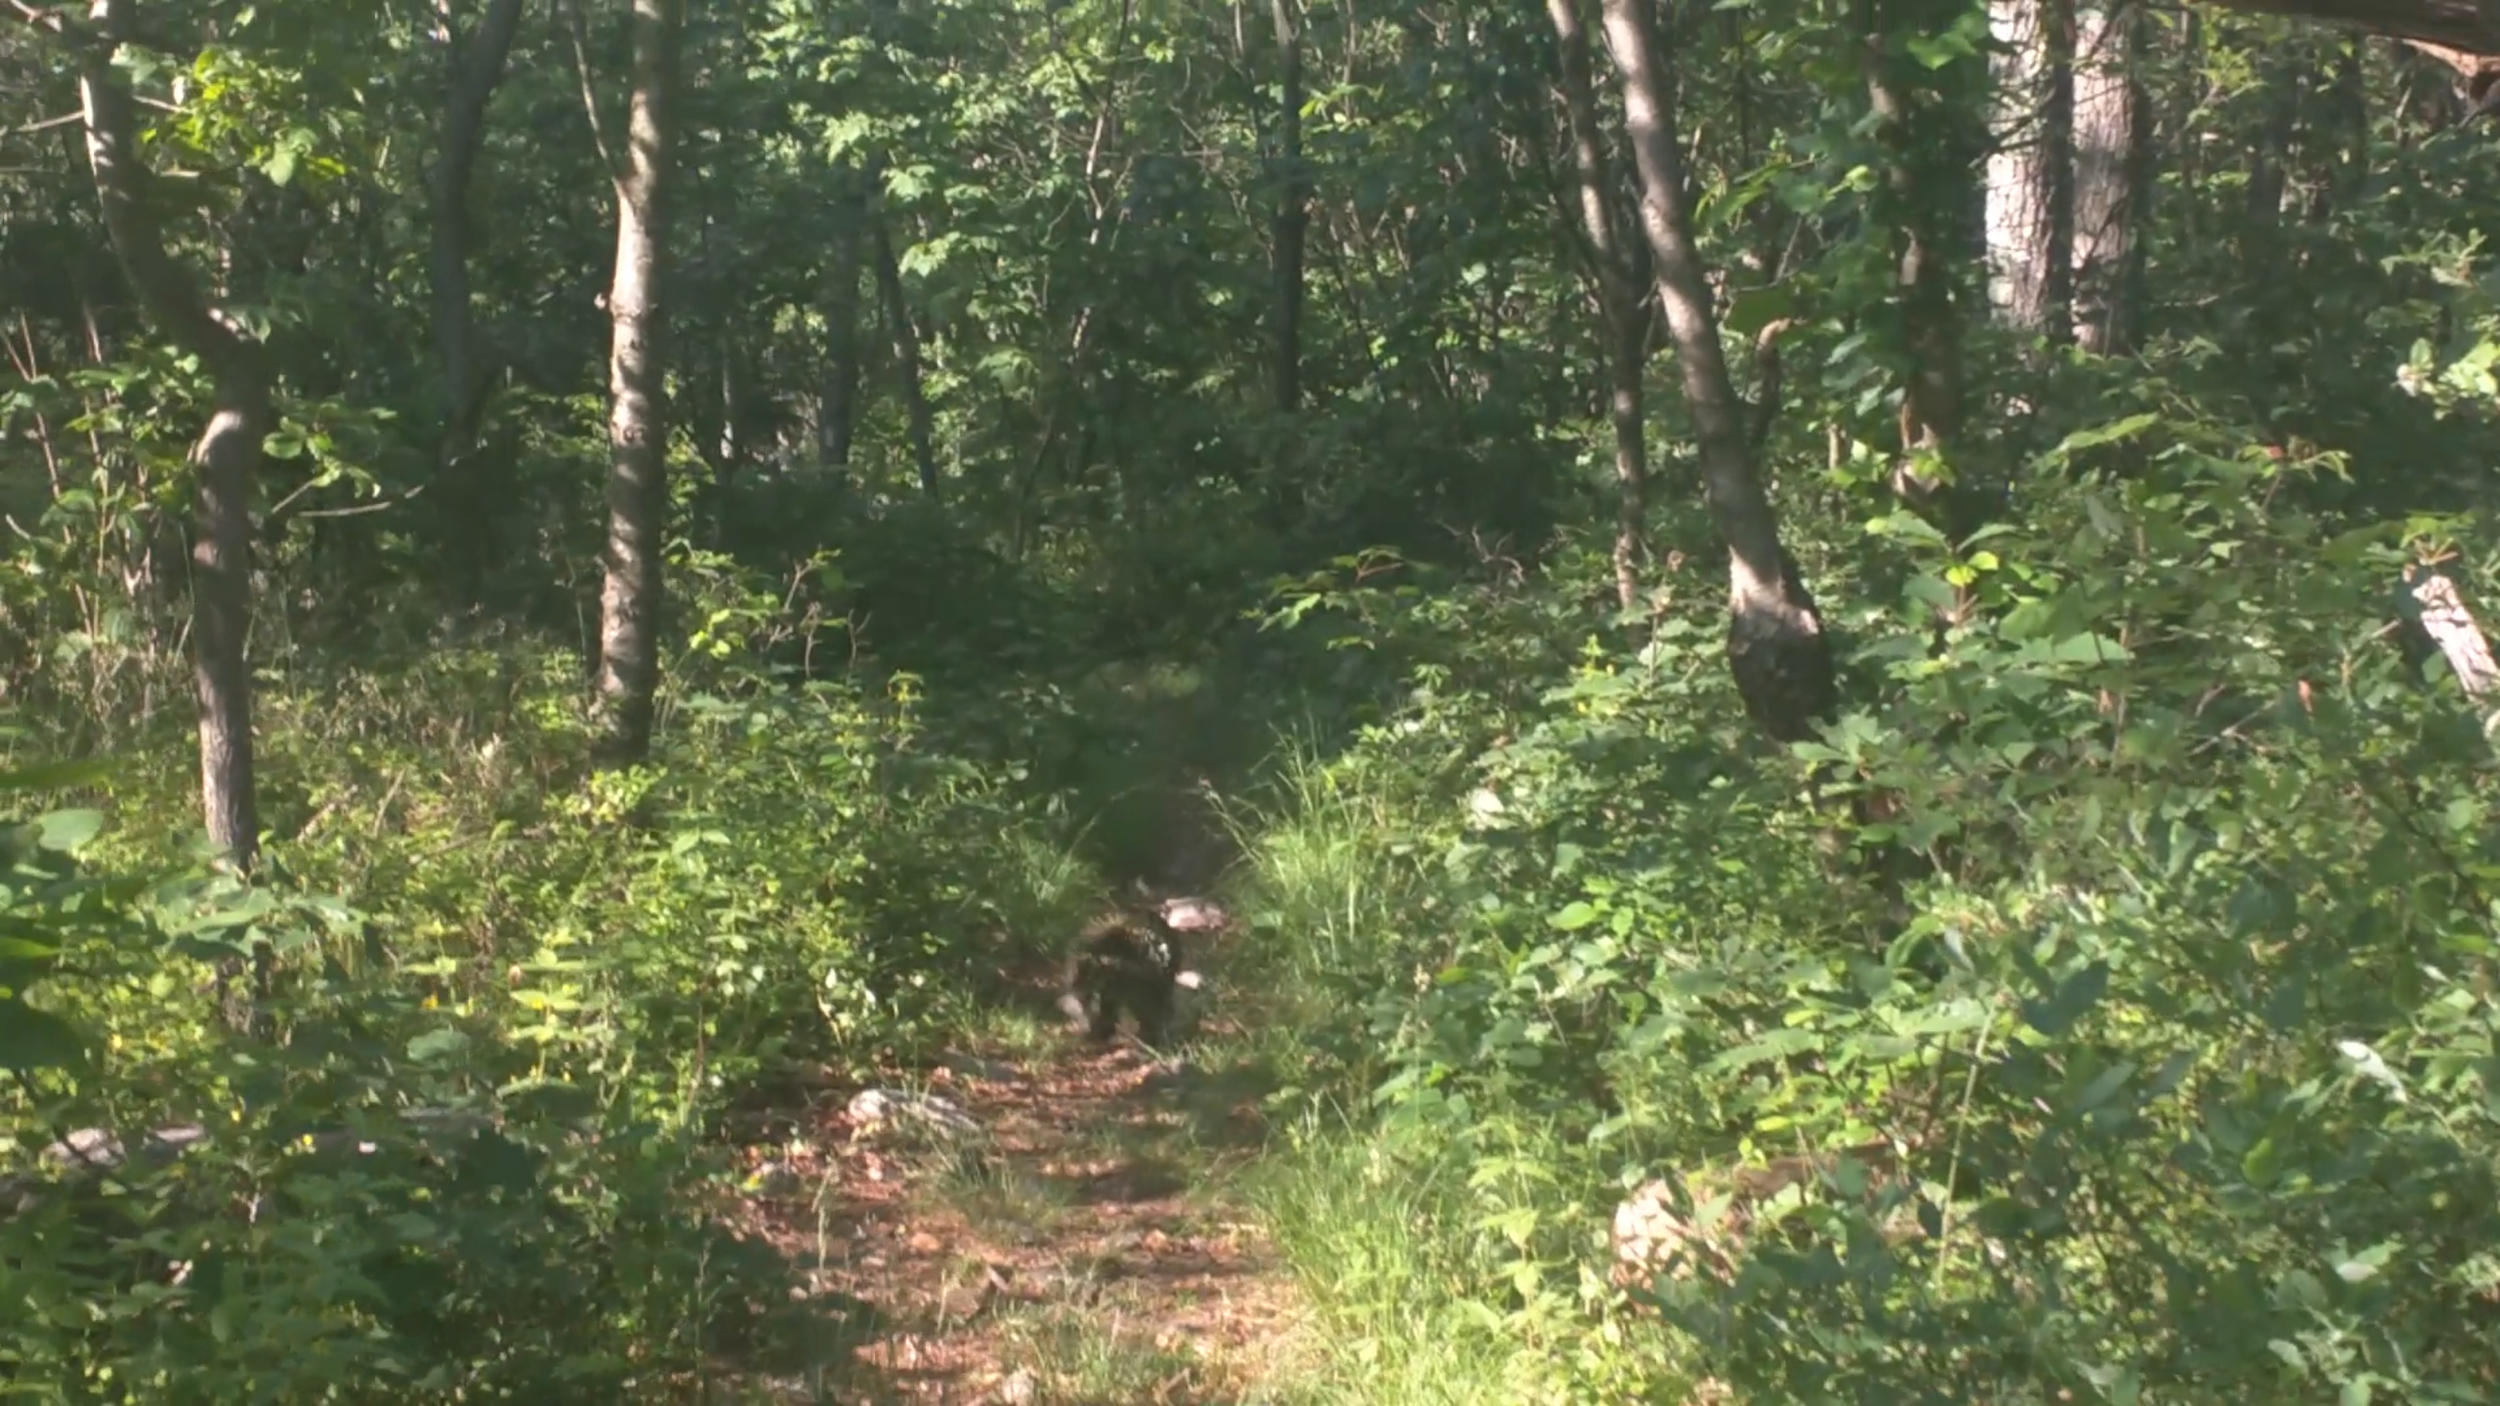 I promise that grainy black mass in the trail is a porcupine.